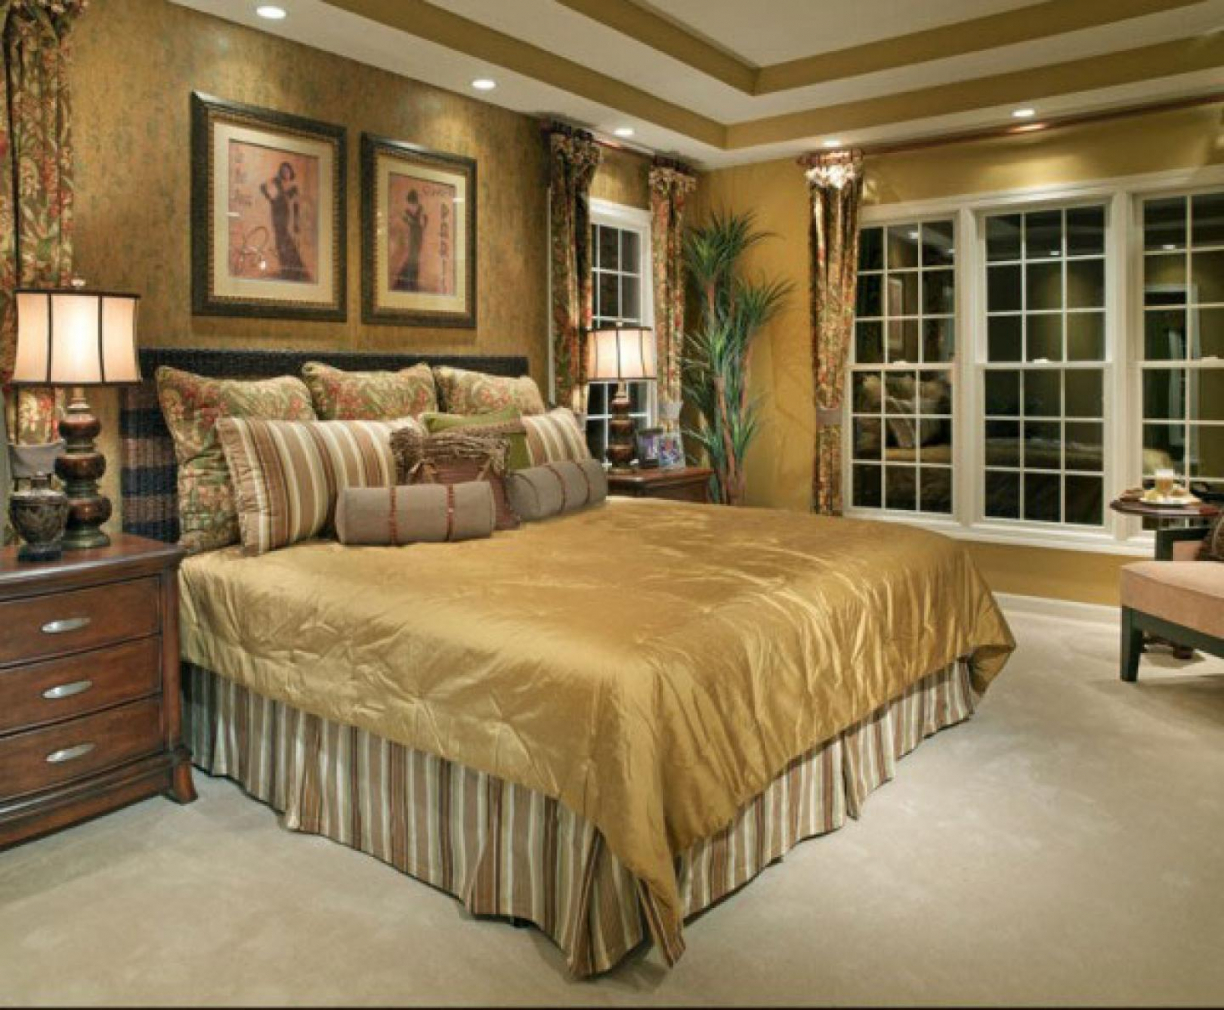 traditional home bedroom photos photo - 6